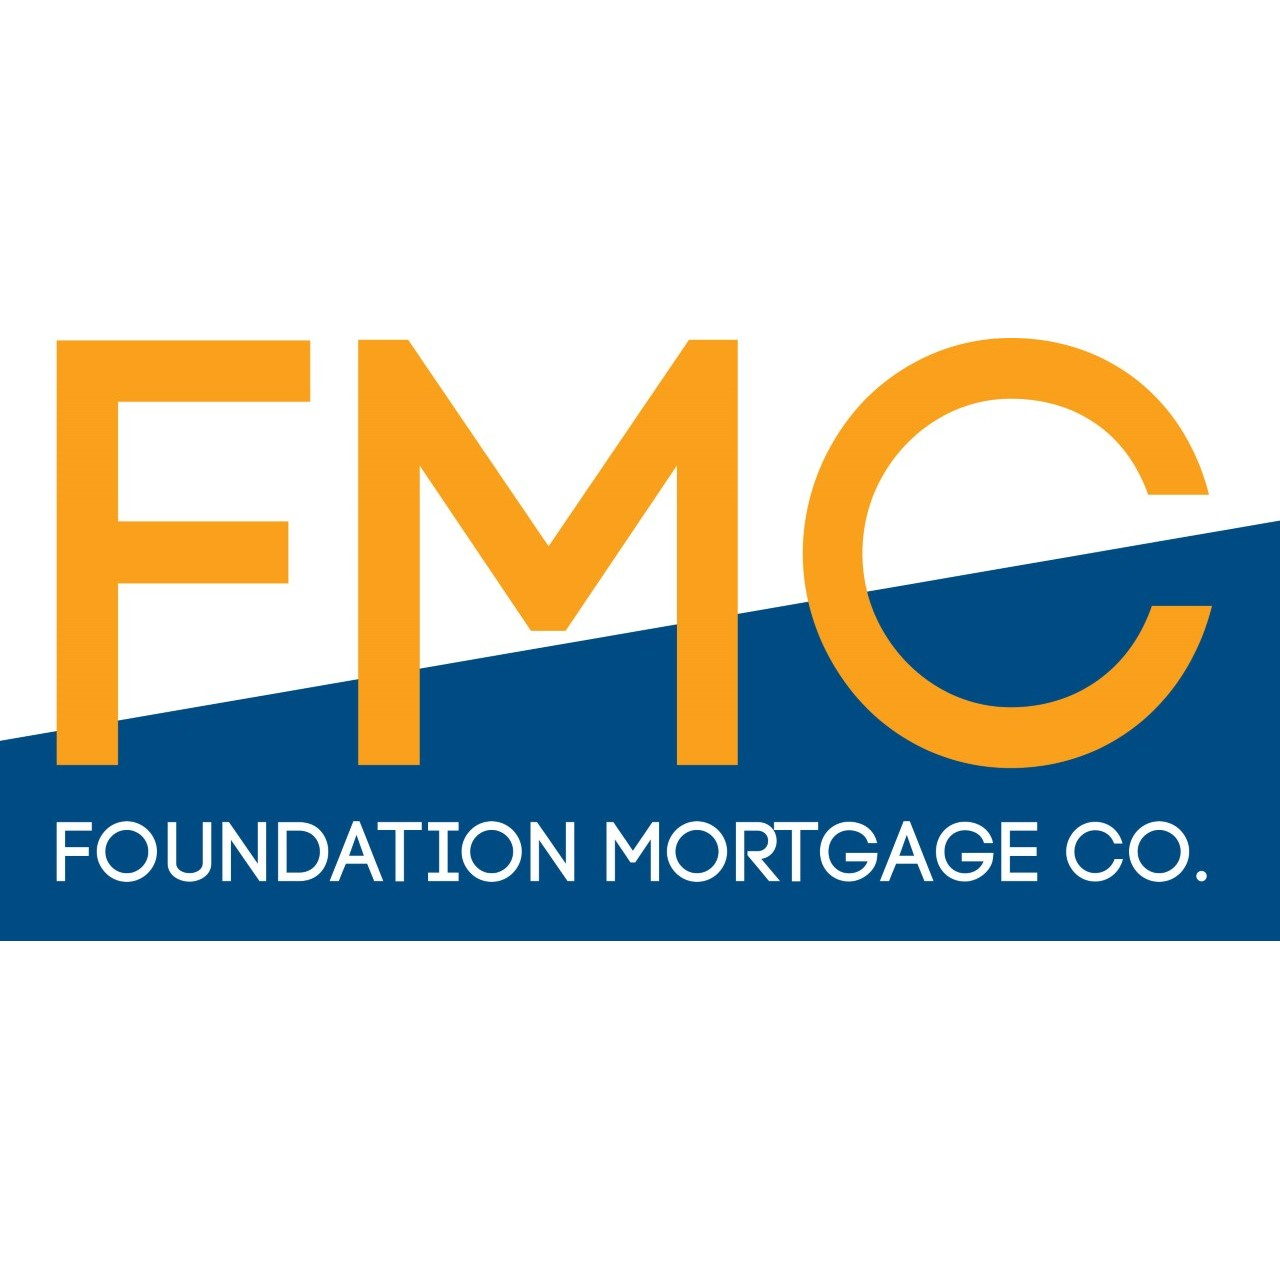 Foundation Mortgage Company